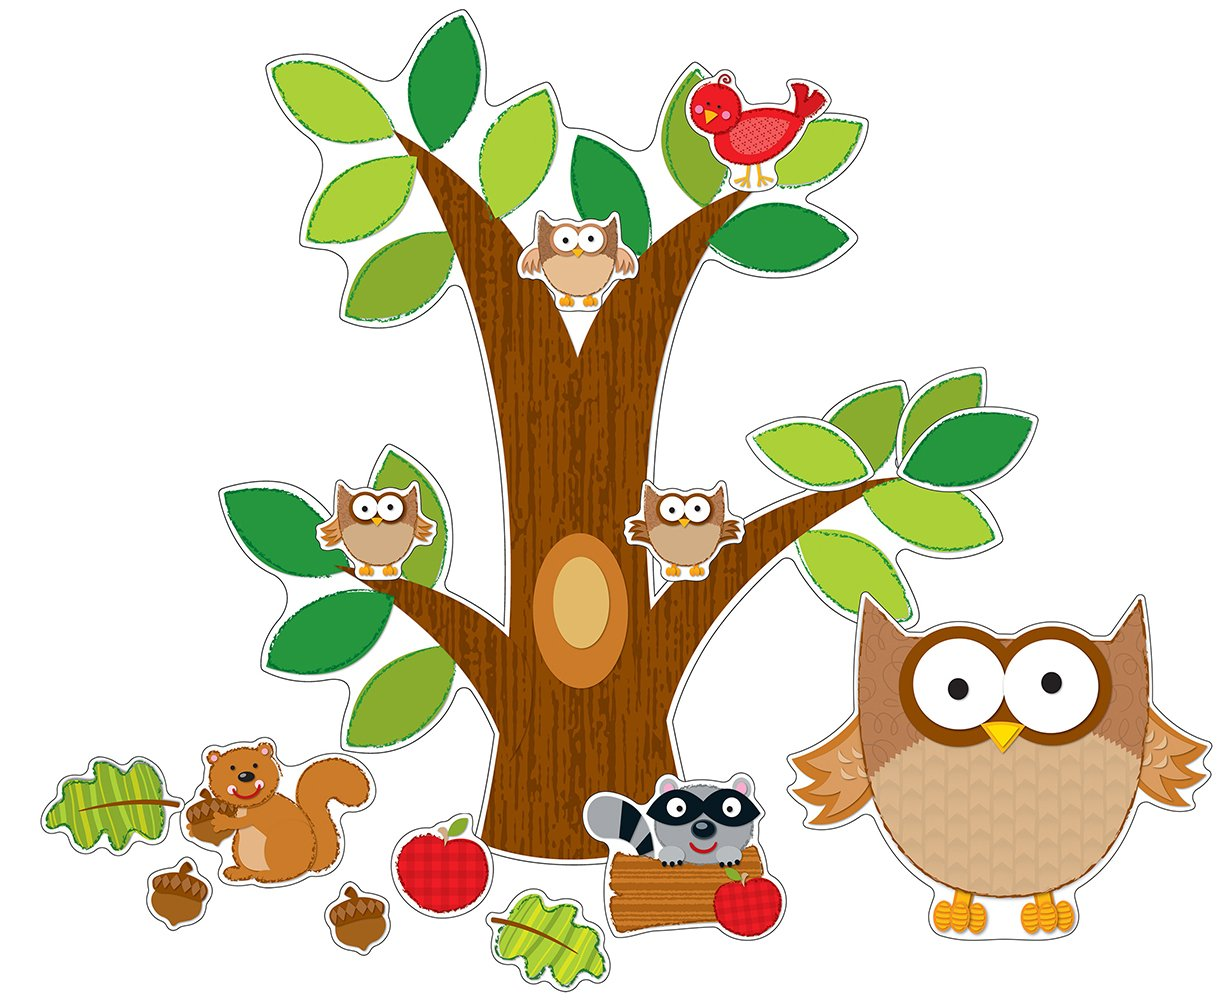 Carson Dellosa Owl Bulletin Board Set (110137) Carson-Dellosa Publishing Elementary Education Education / Elementary